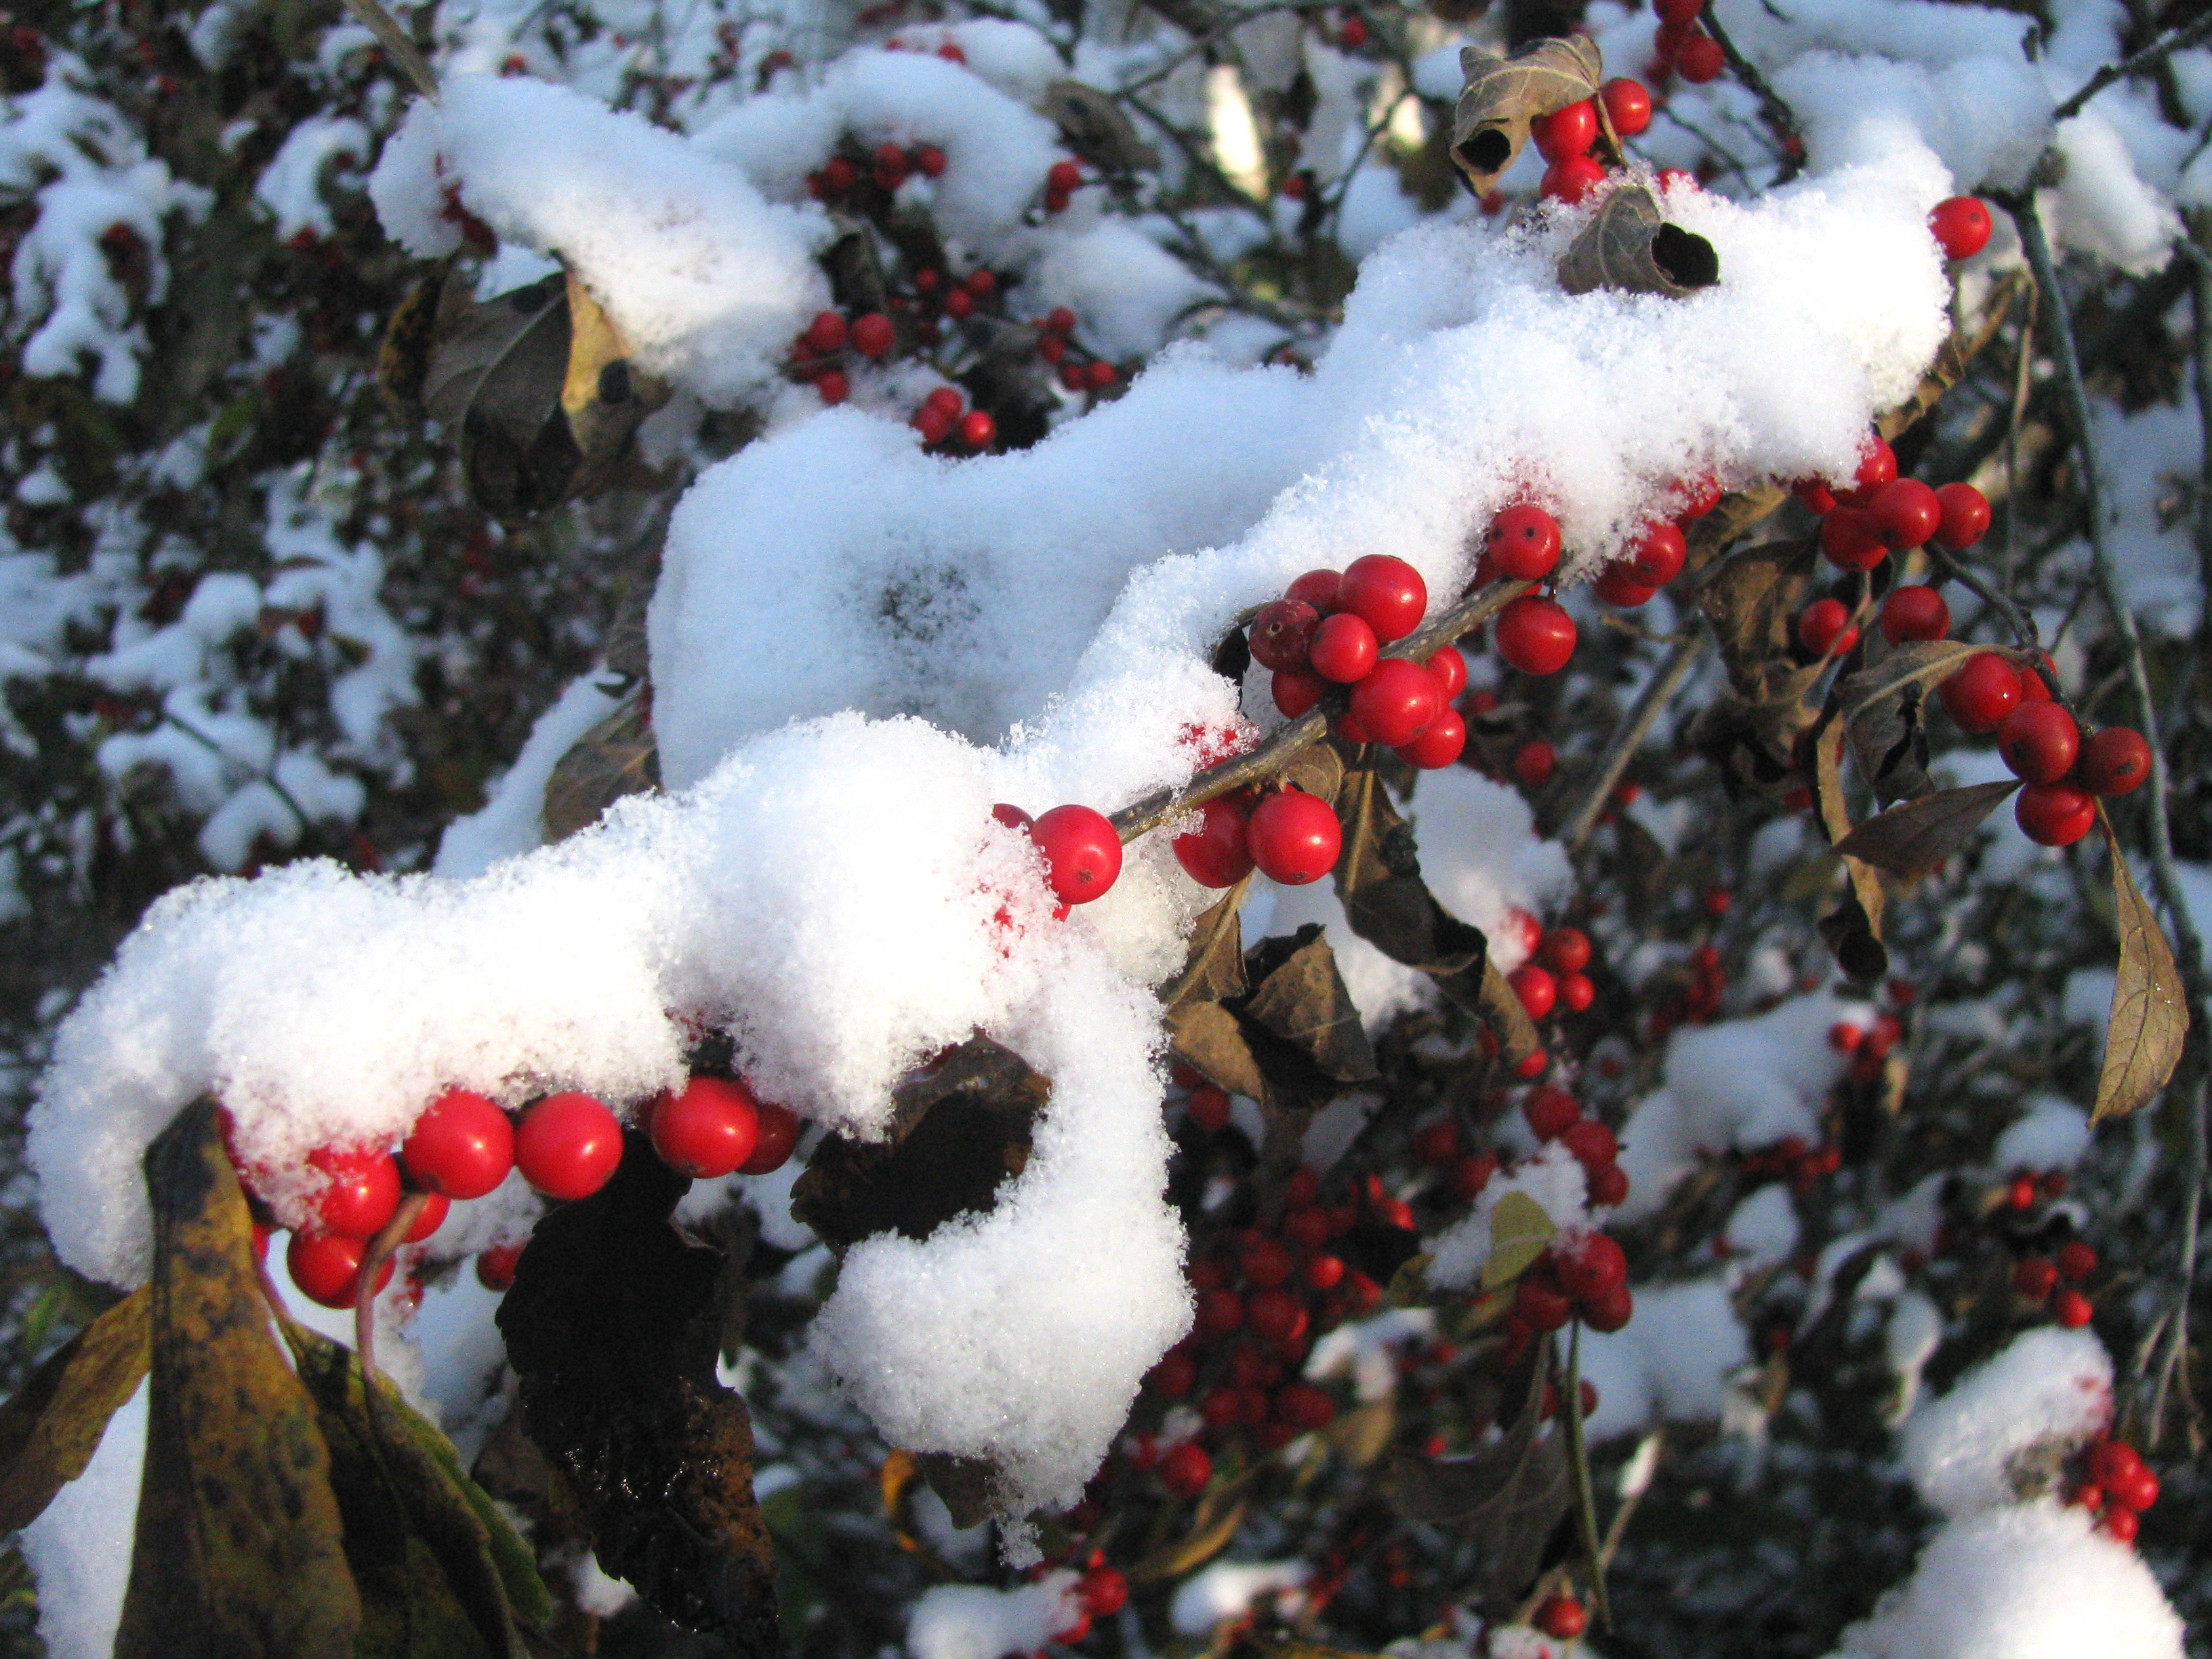 A Winterberry cloaked in fresh snow.